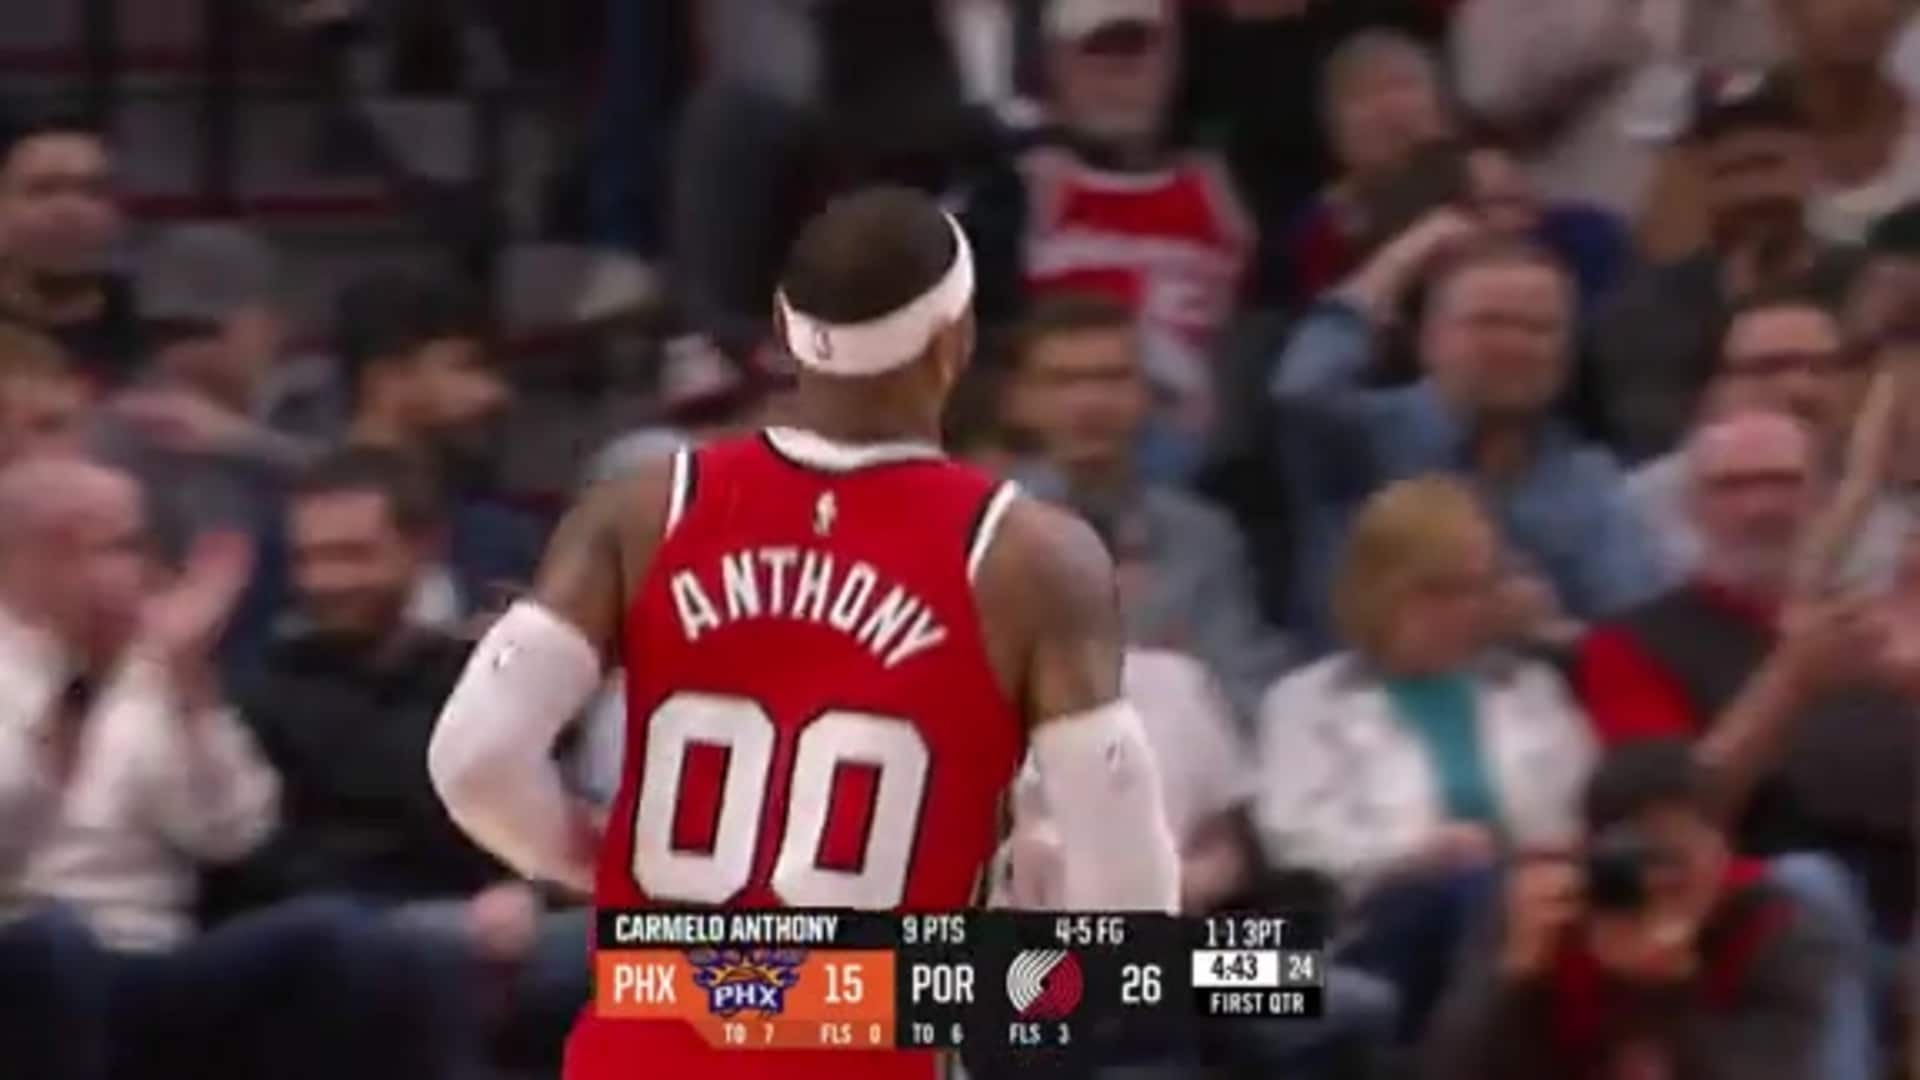 Carmelo Anthony (21 PTS) Highlights vs. Suns